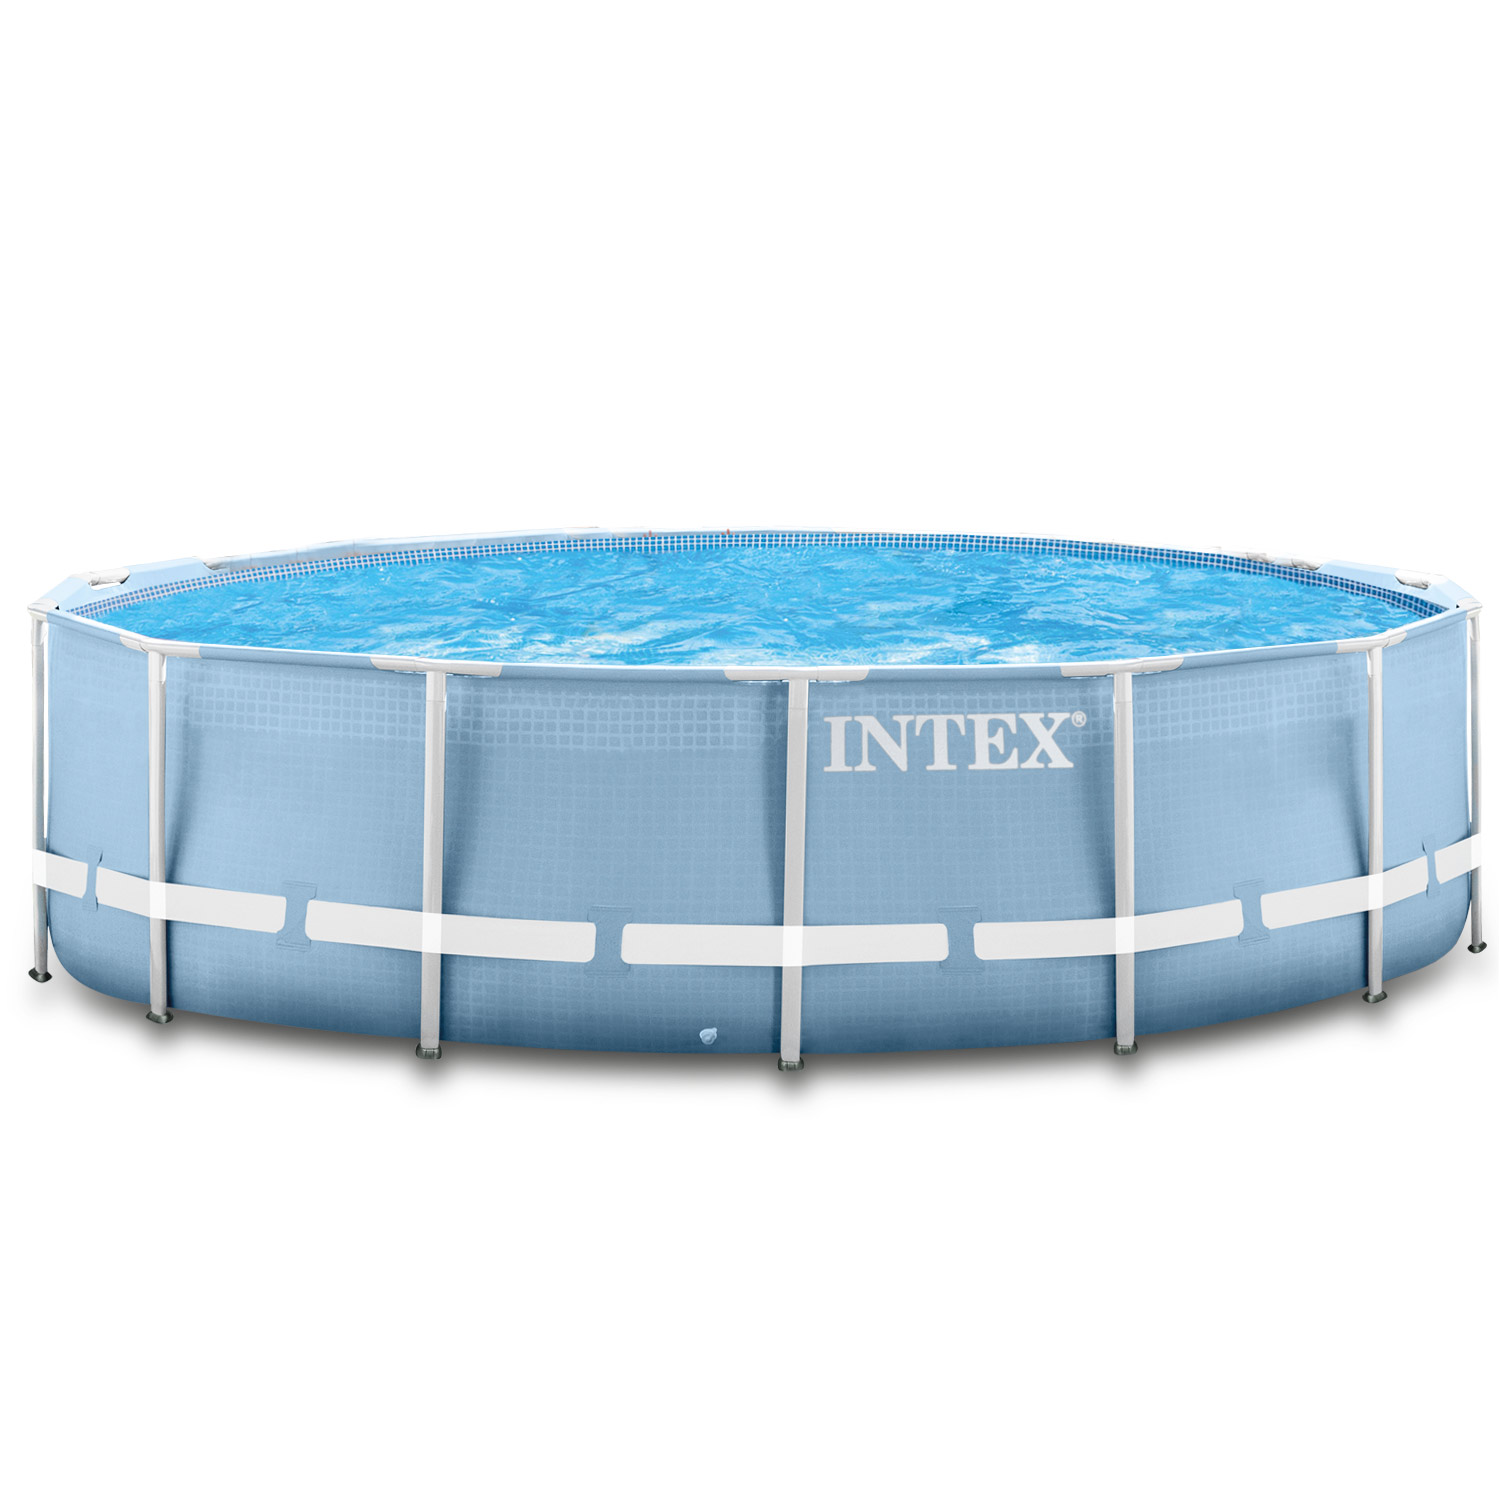 Pool Komplettset Amazon Garten Pool Komplettset